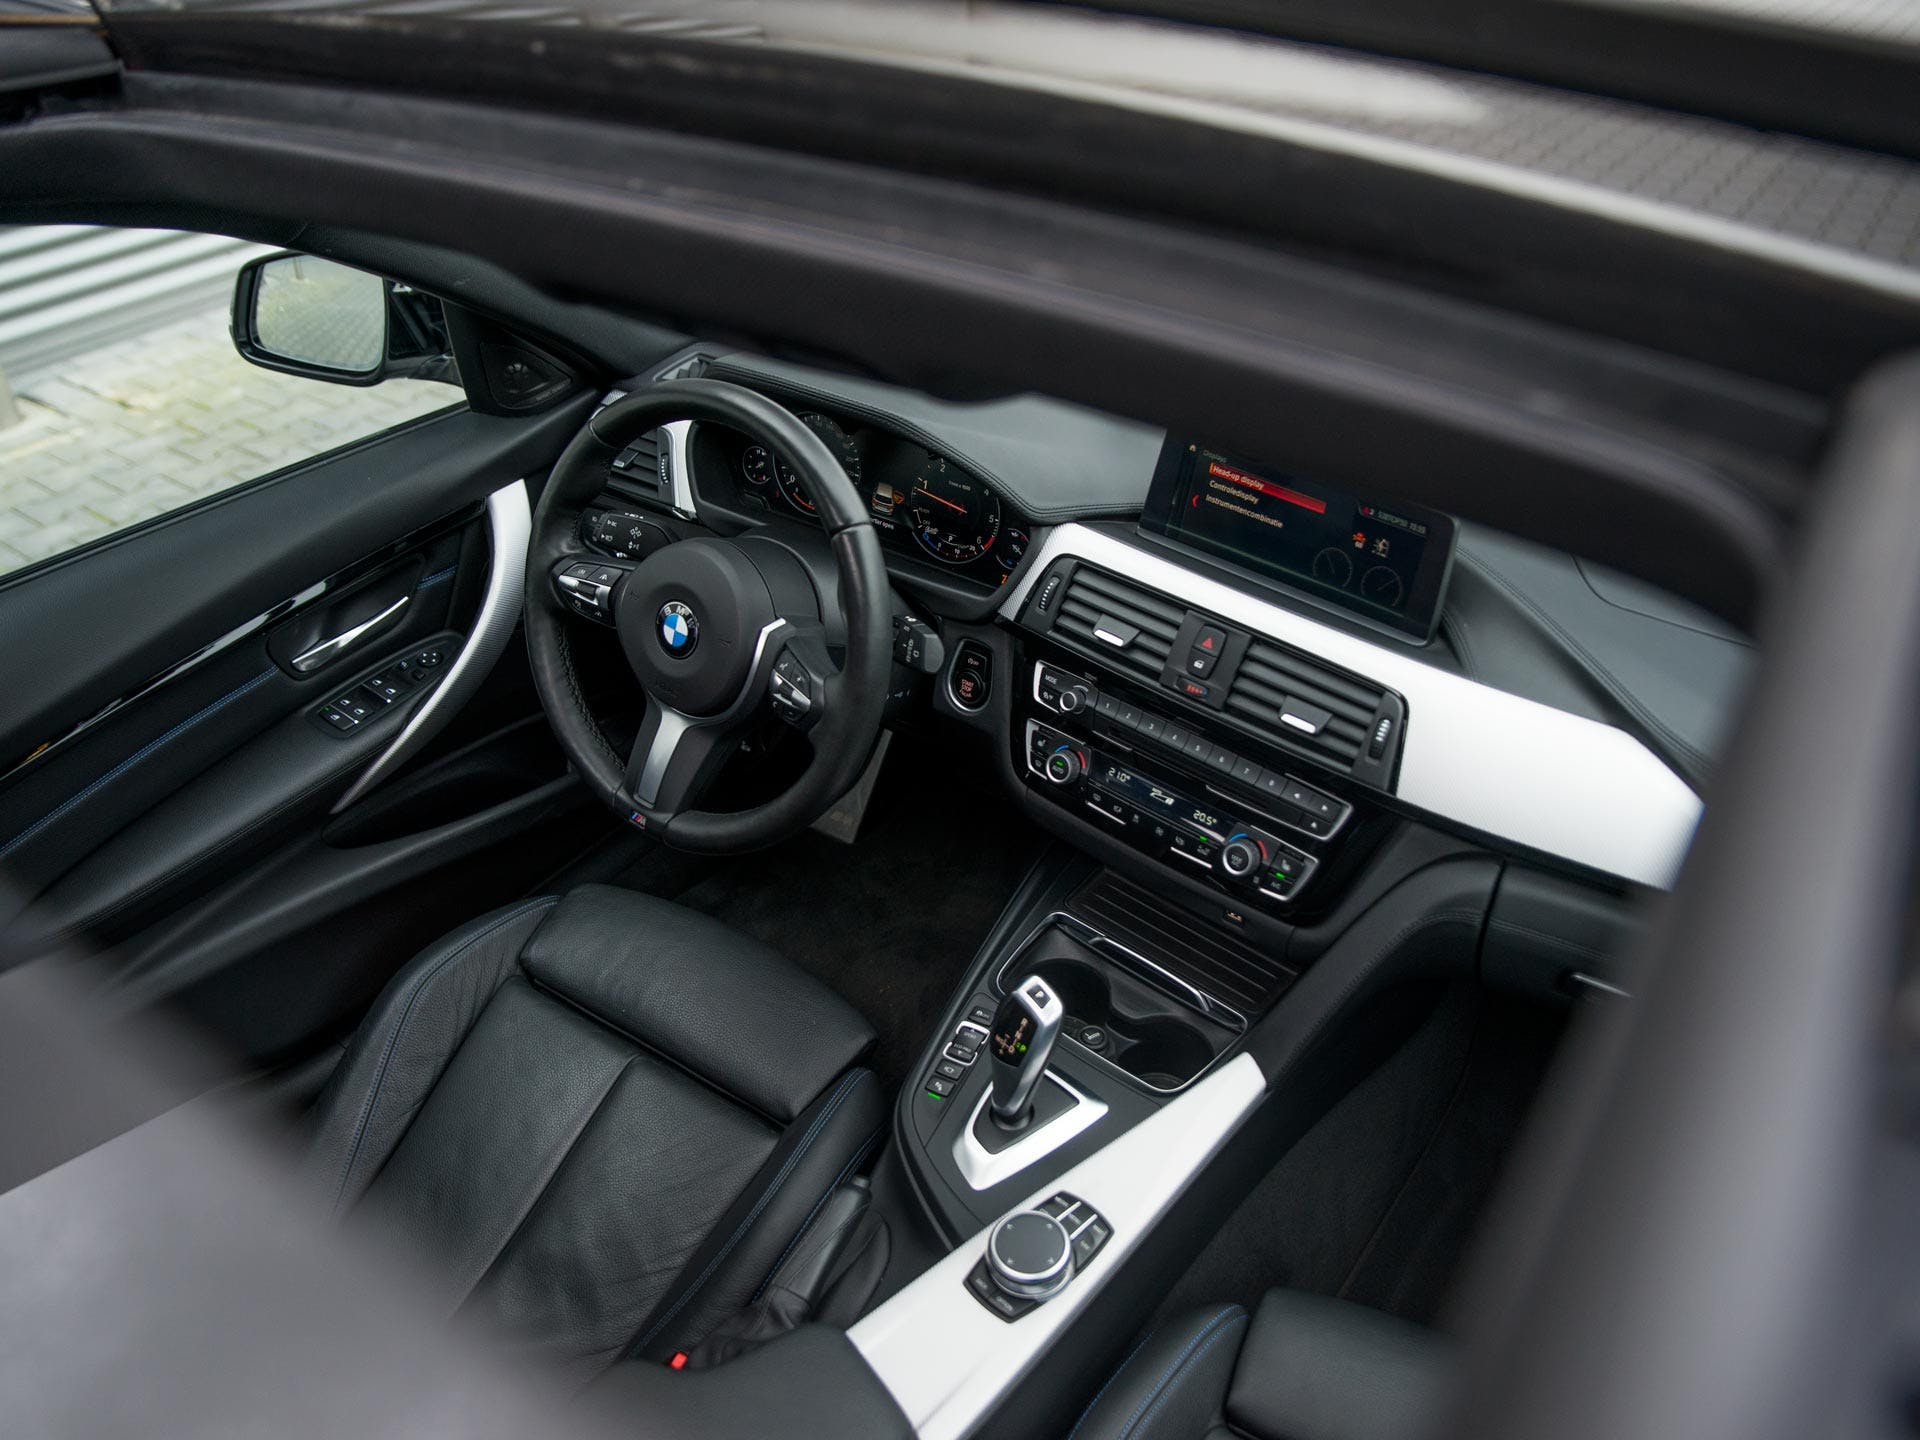 Tweedehands BMW 3 Serie Touring 330d occasion